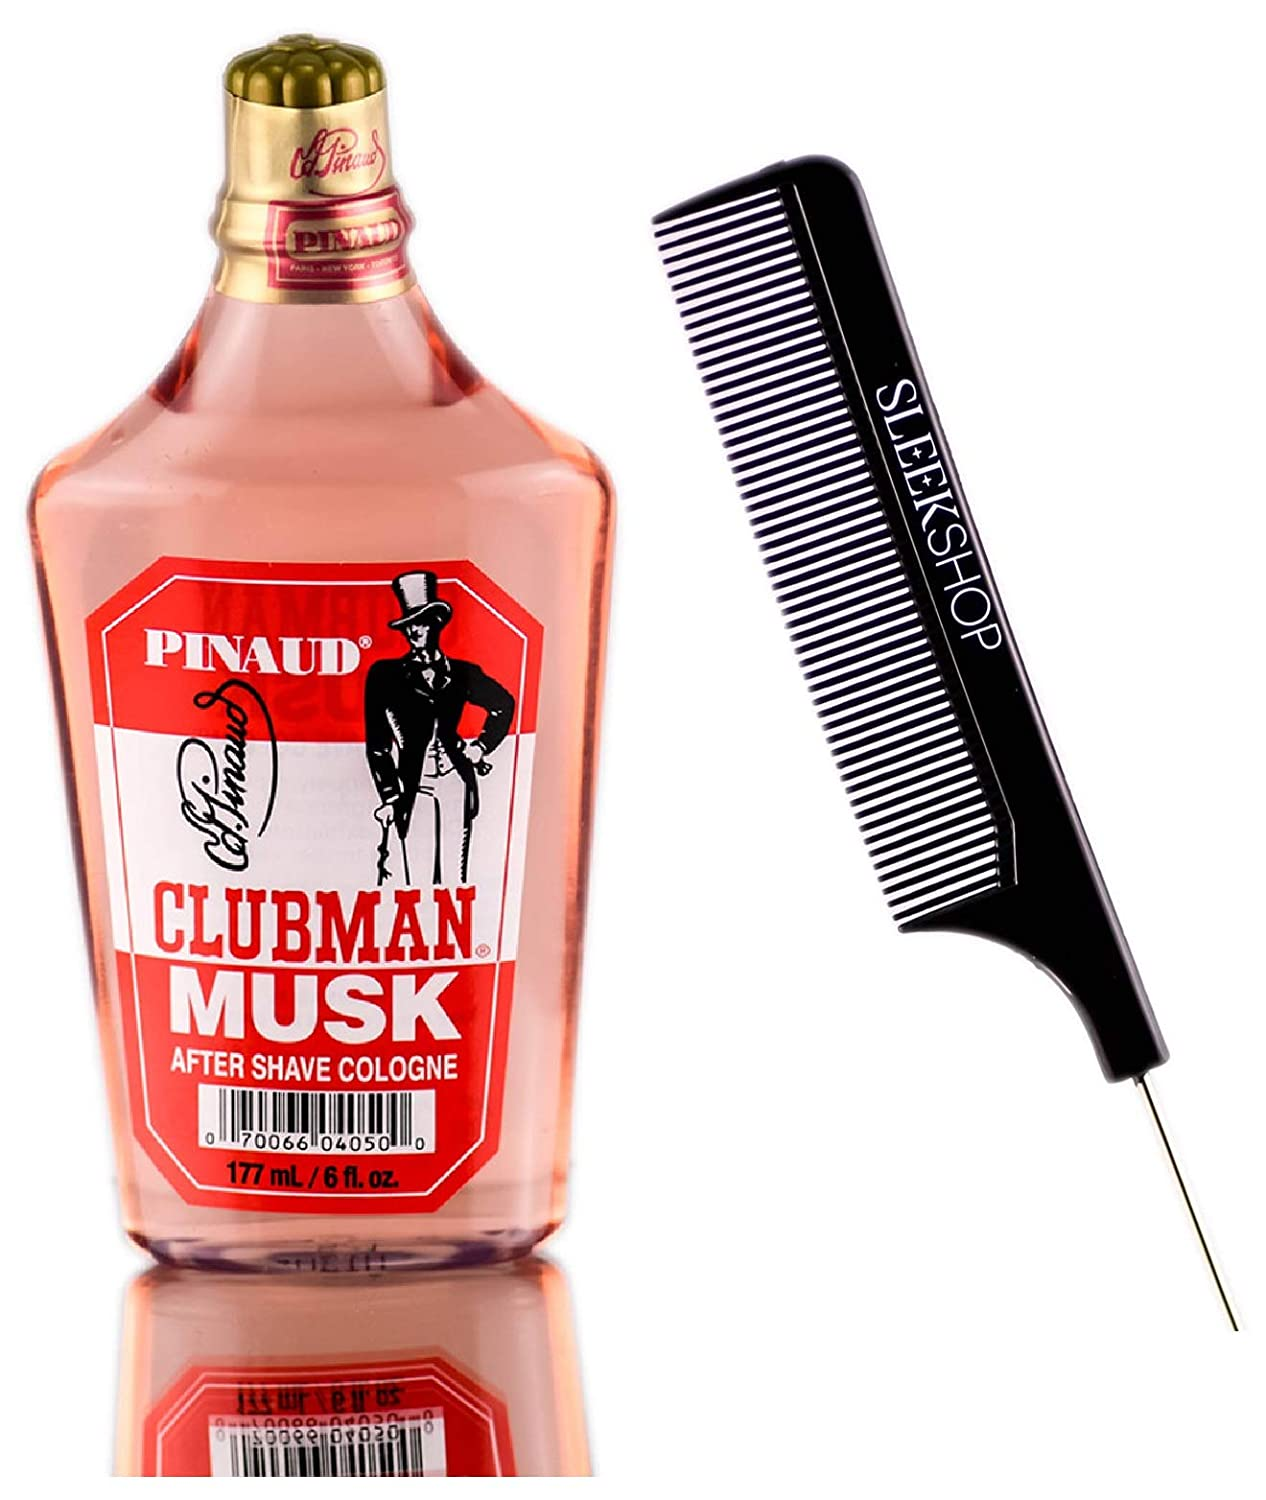 Pinaud Clubman Since 1810 MUSK Cologne Ranking integrated Be super welcome 1st place Lotion Sl w After-Shave